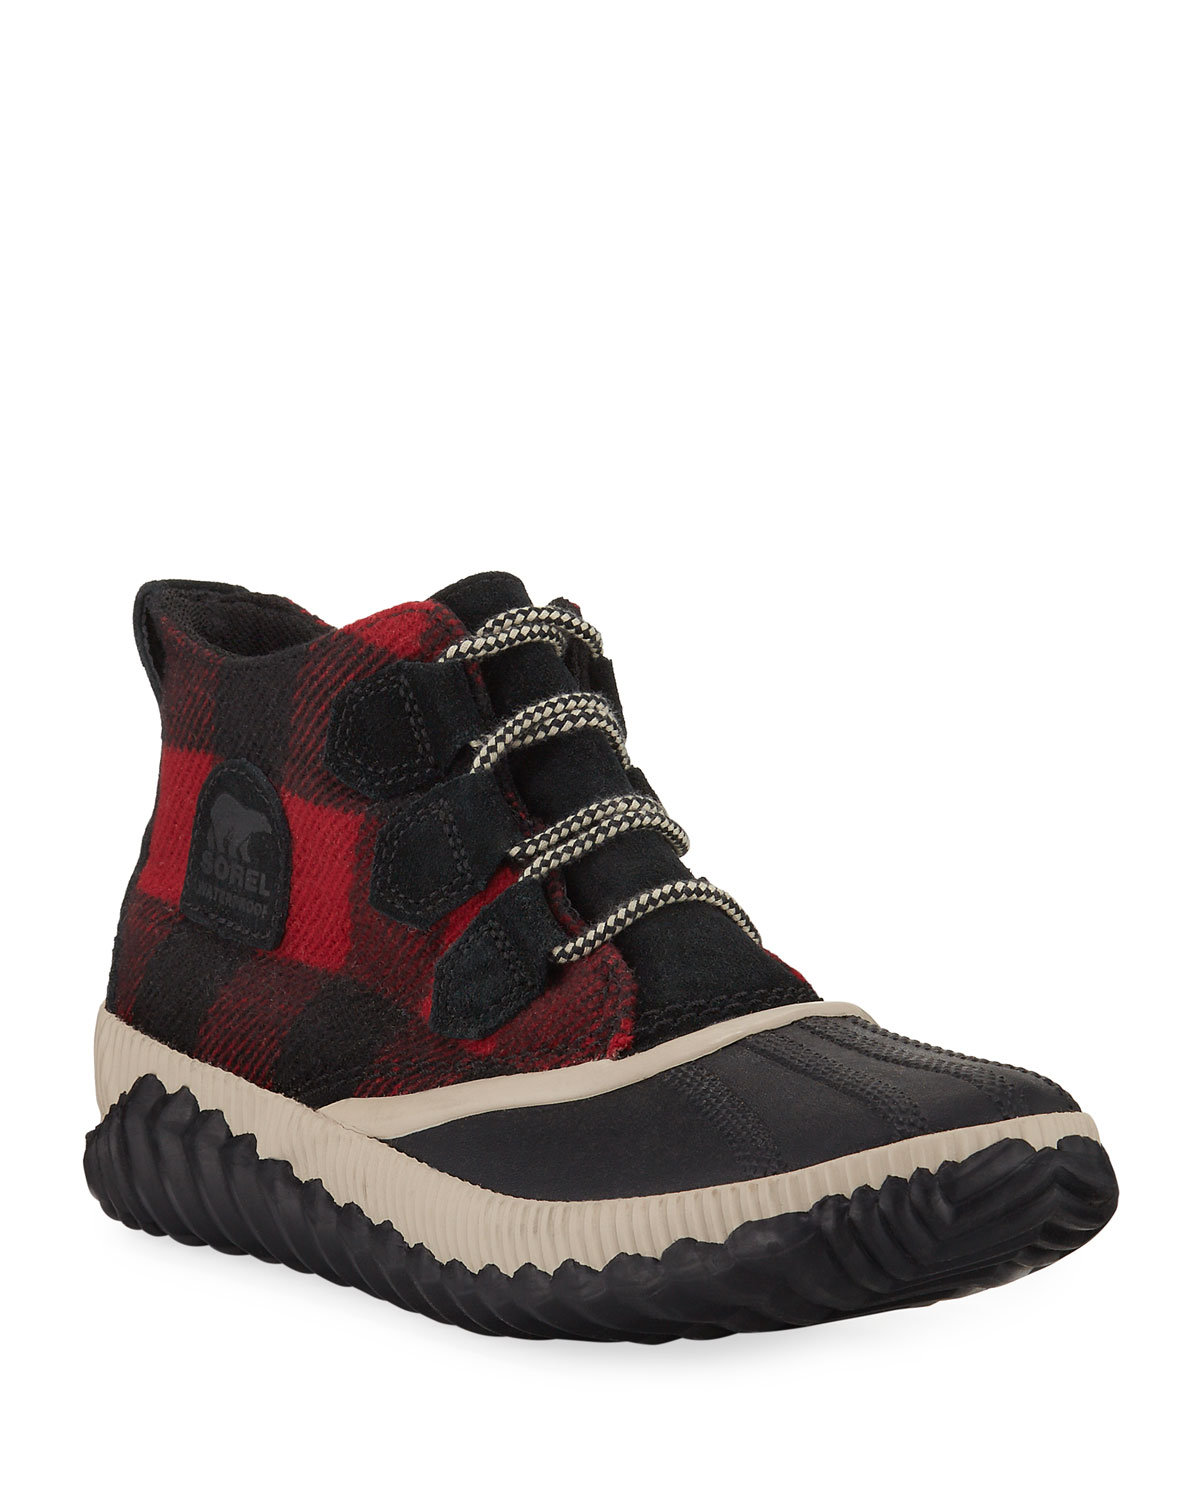 Sorel Boots OUT 'N ABOUT PLUS WATERPROOF TARTAN BOOTS